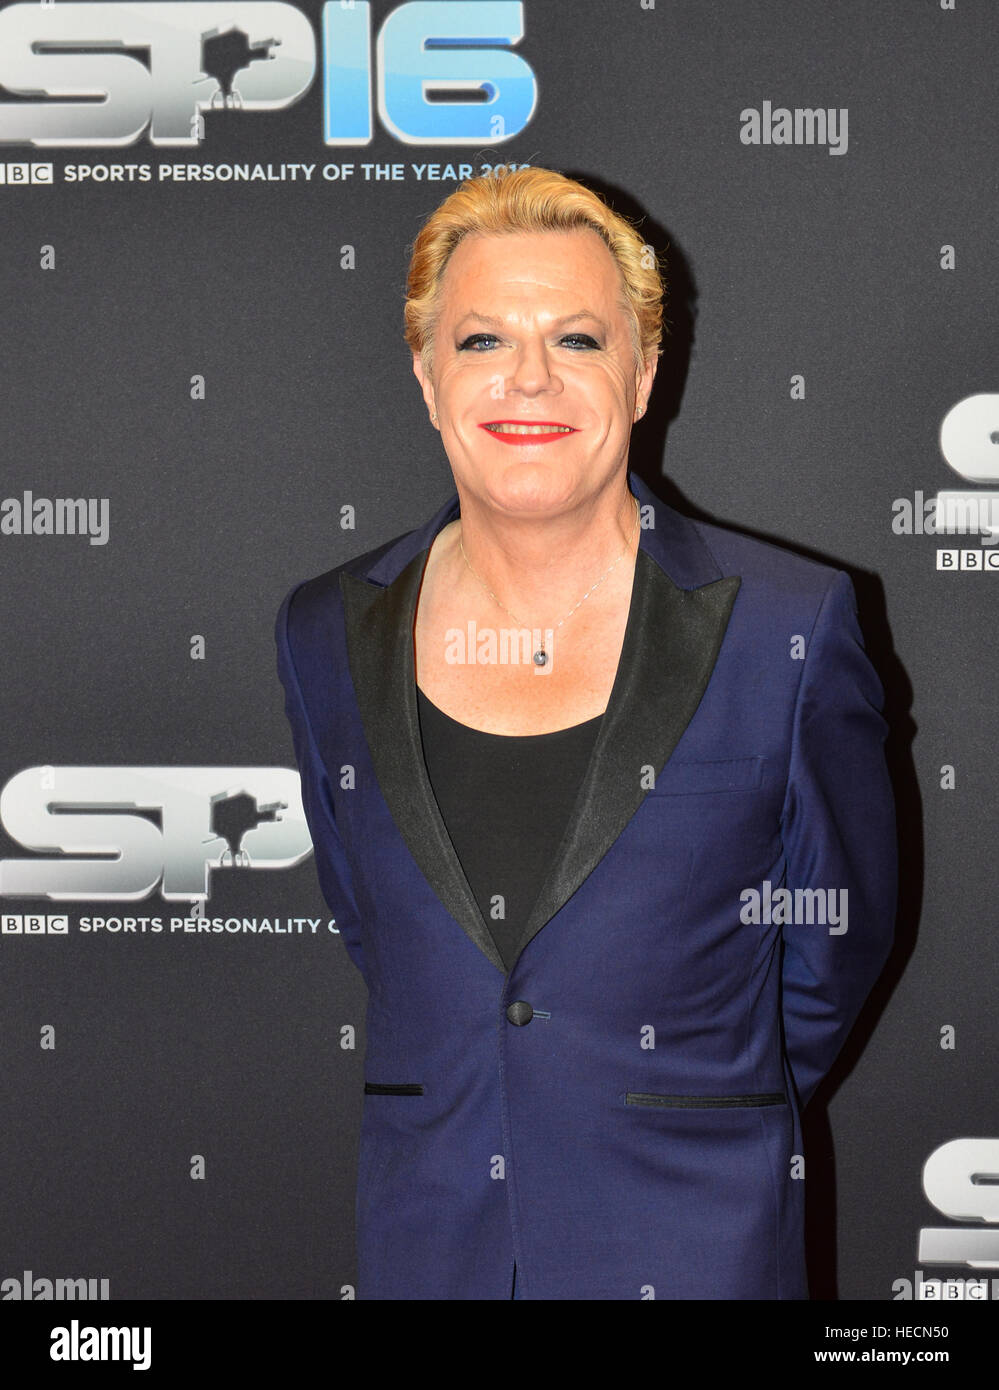 Eddie Izzard  arriving on the Red Carpet  the 2016 Sports personality Of The Year, Genting Arena, Birmingham, UK - Stock Image